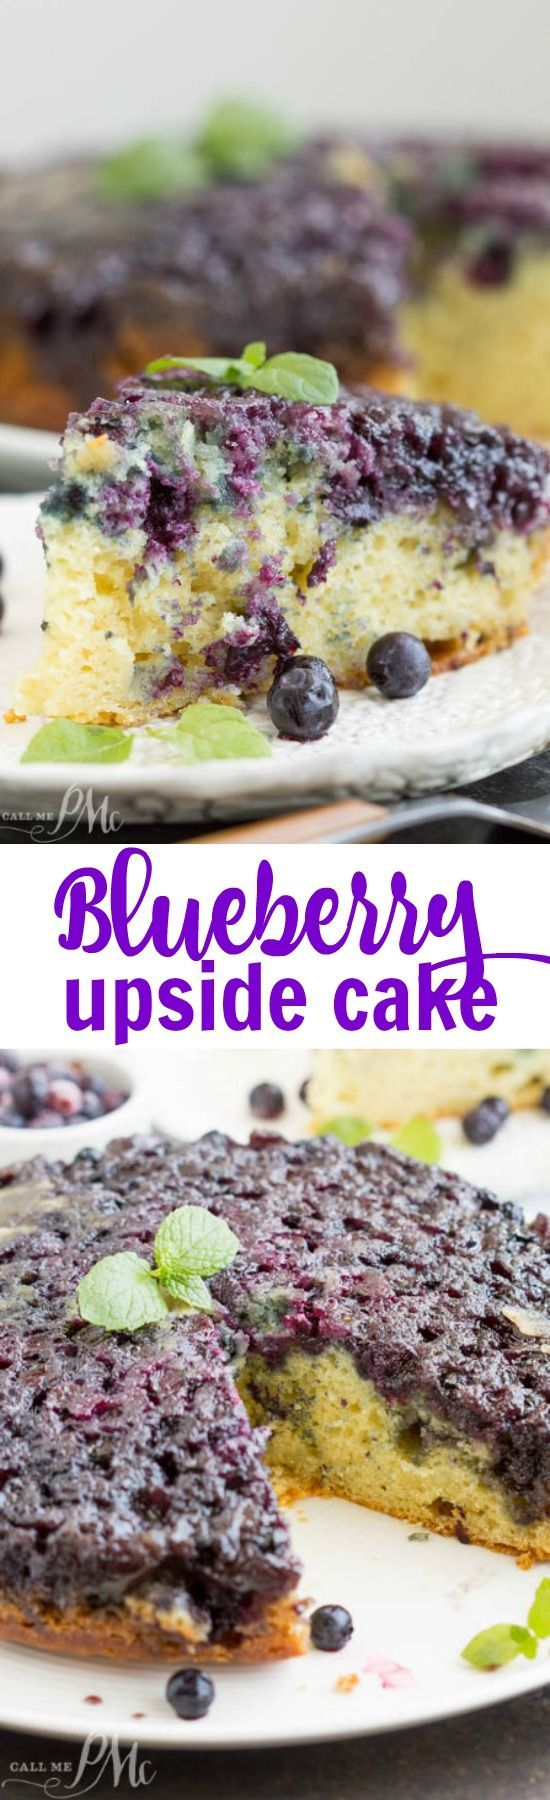 Blueberries are in season and now is the time to make this delicious #cake! Homemade Blueberry Upside-down Cake http://www.callmepmc.com/homemade-blueberry-upside-down-cake/?utm_campaign=coschedule&utm_source=pinterest&utm_medium=Paula%20%7C%20CallMePMc.com&utm_content=Homemade%20Blueberry%20Upside-down%20Cake